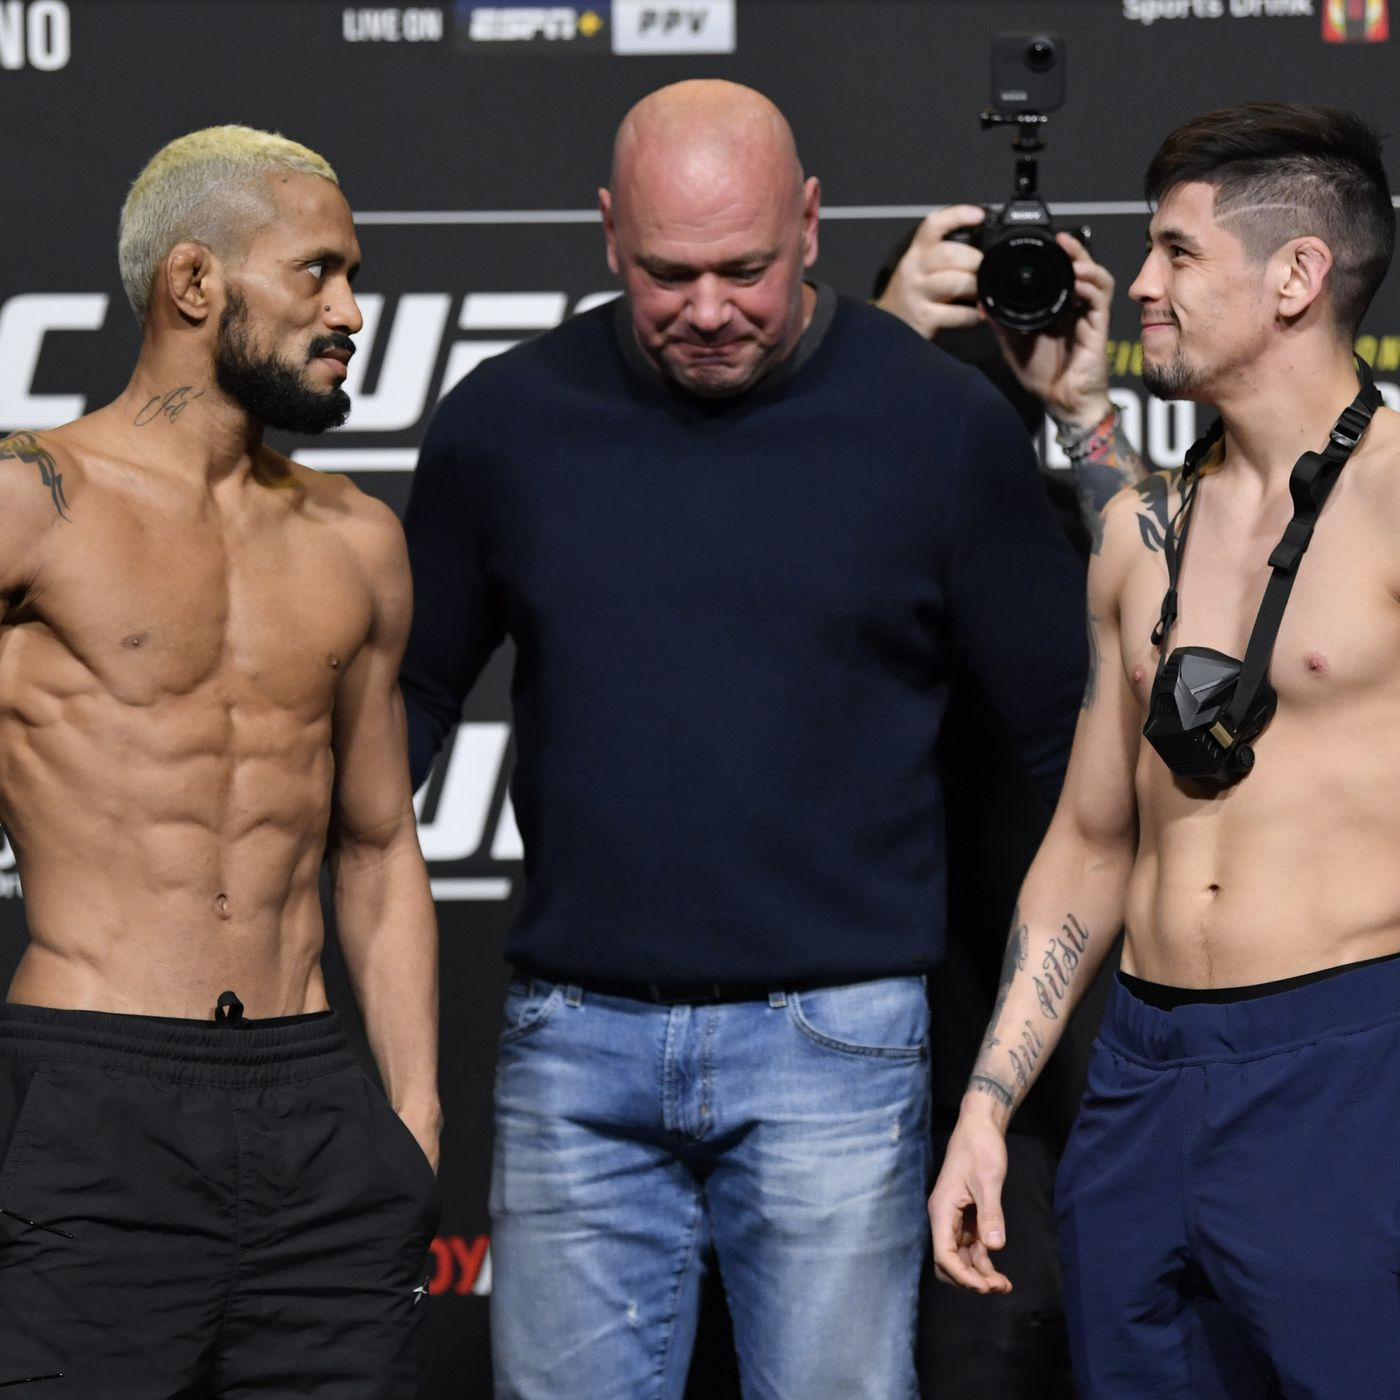 Ufc 256 Results Full Results List Of Winners Knockouts From Las Vegas And Figueiredo Vs Moreno Video Draftkings Nation